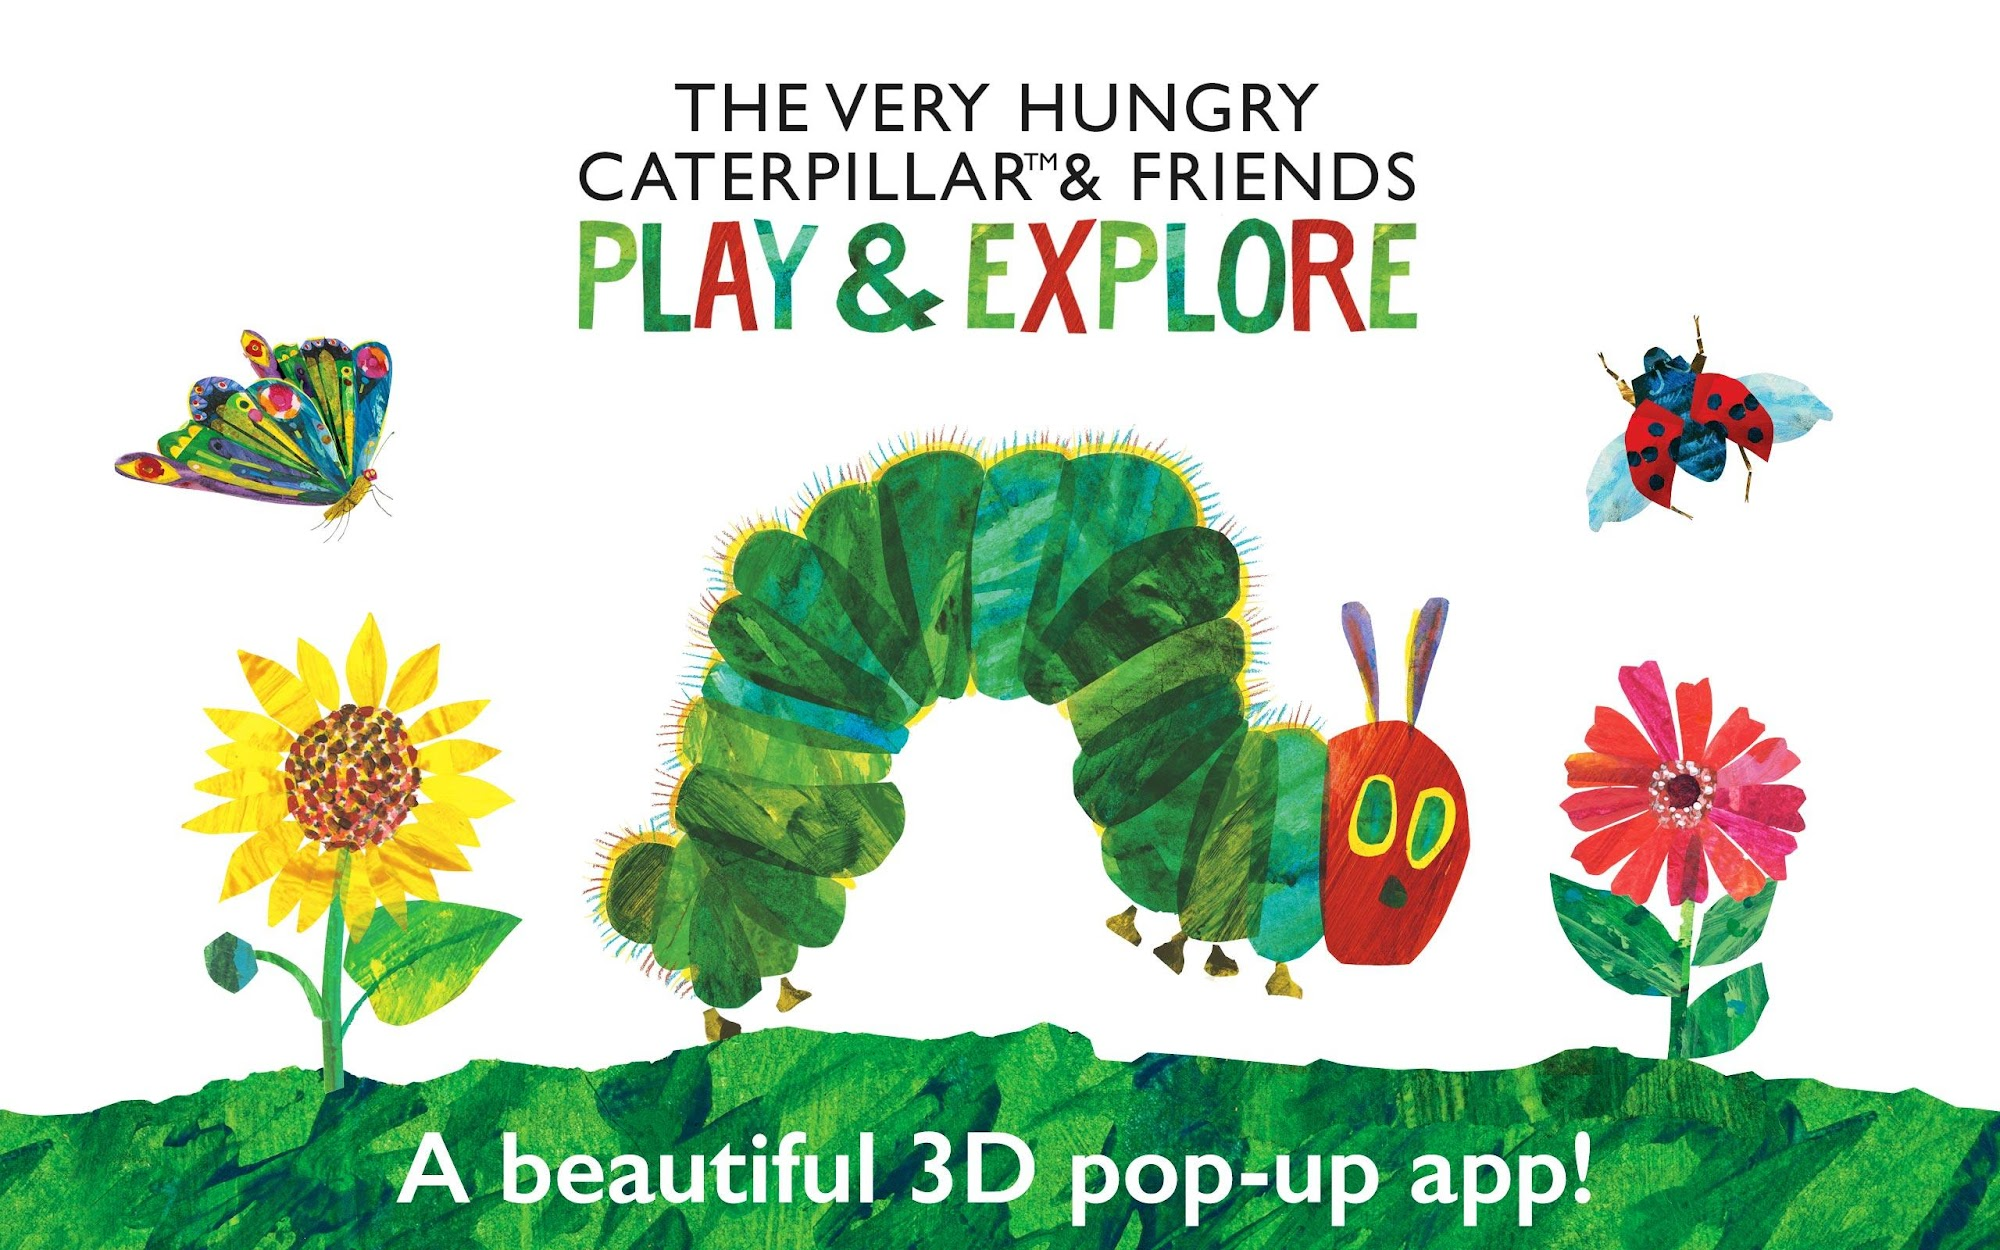 The Very Hungry Caterpillar screenshot #7